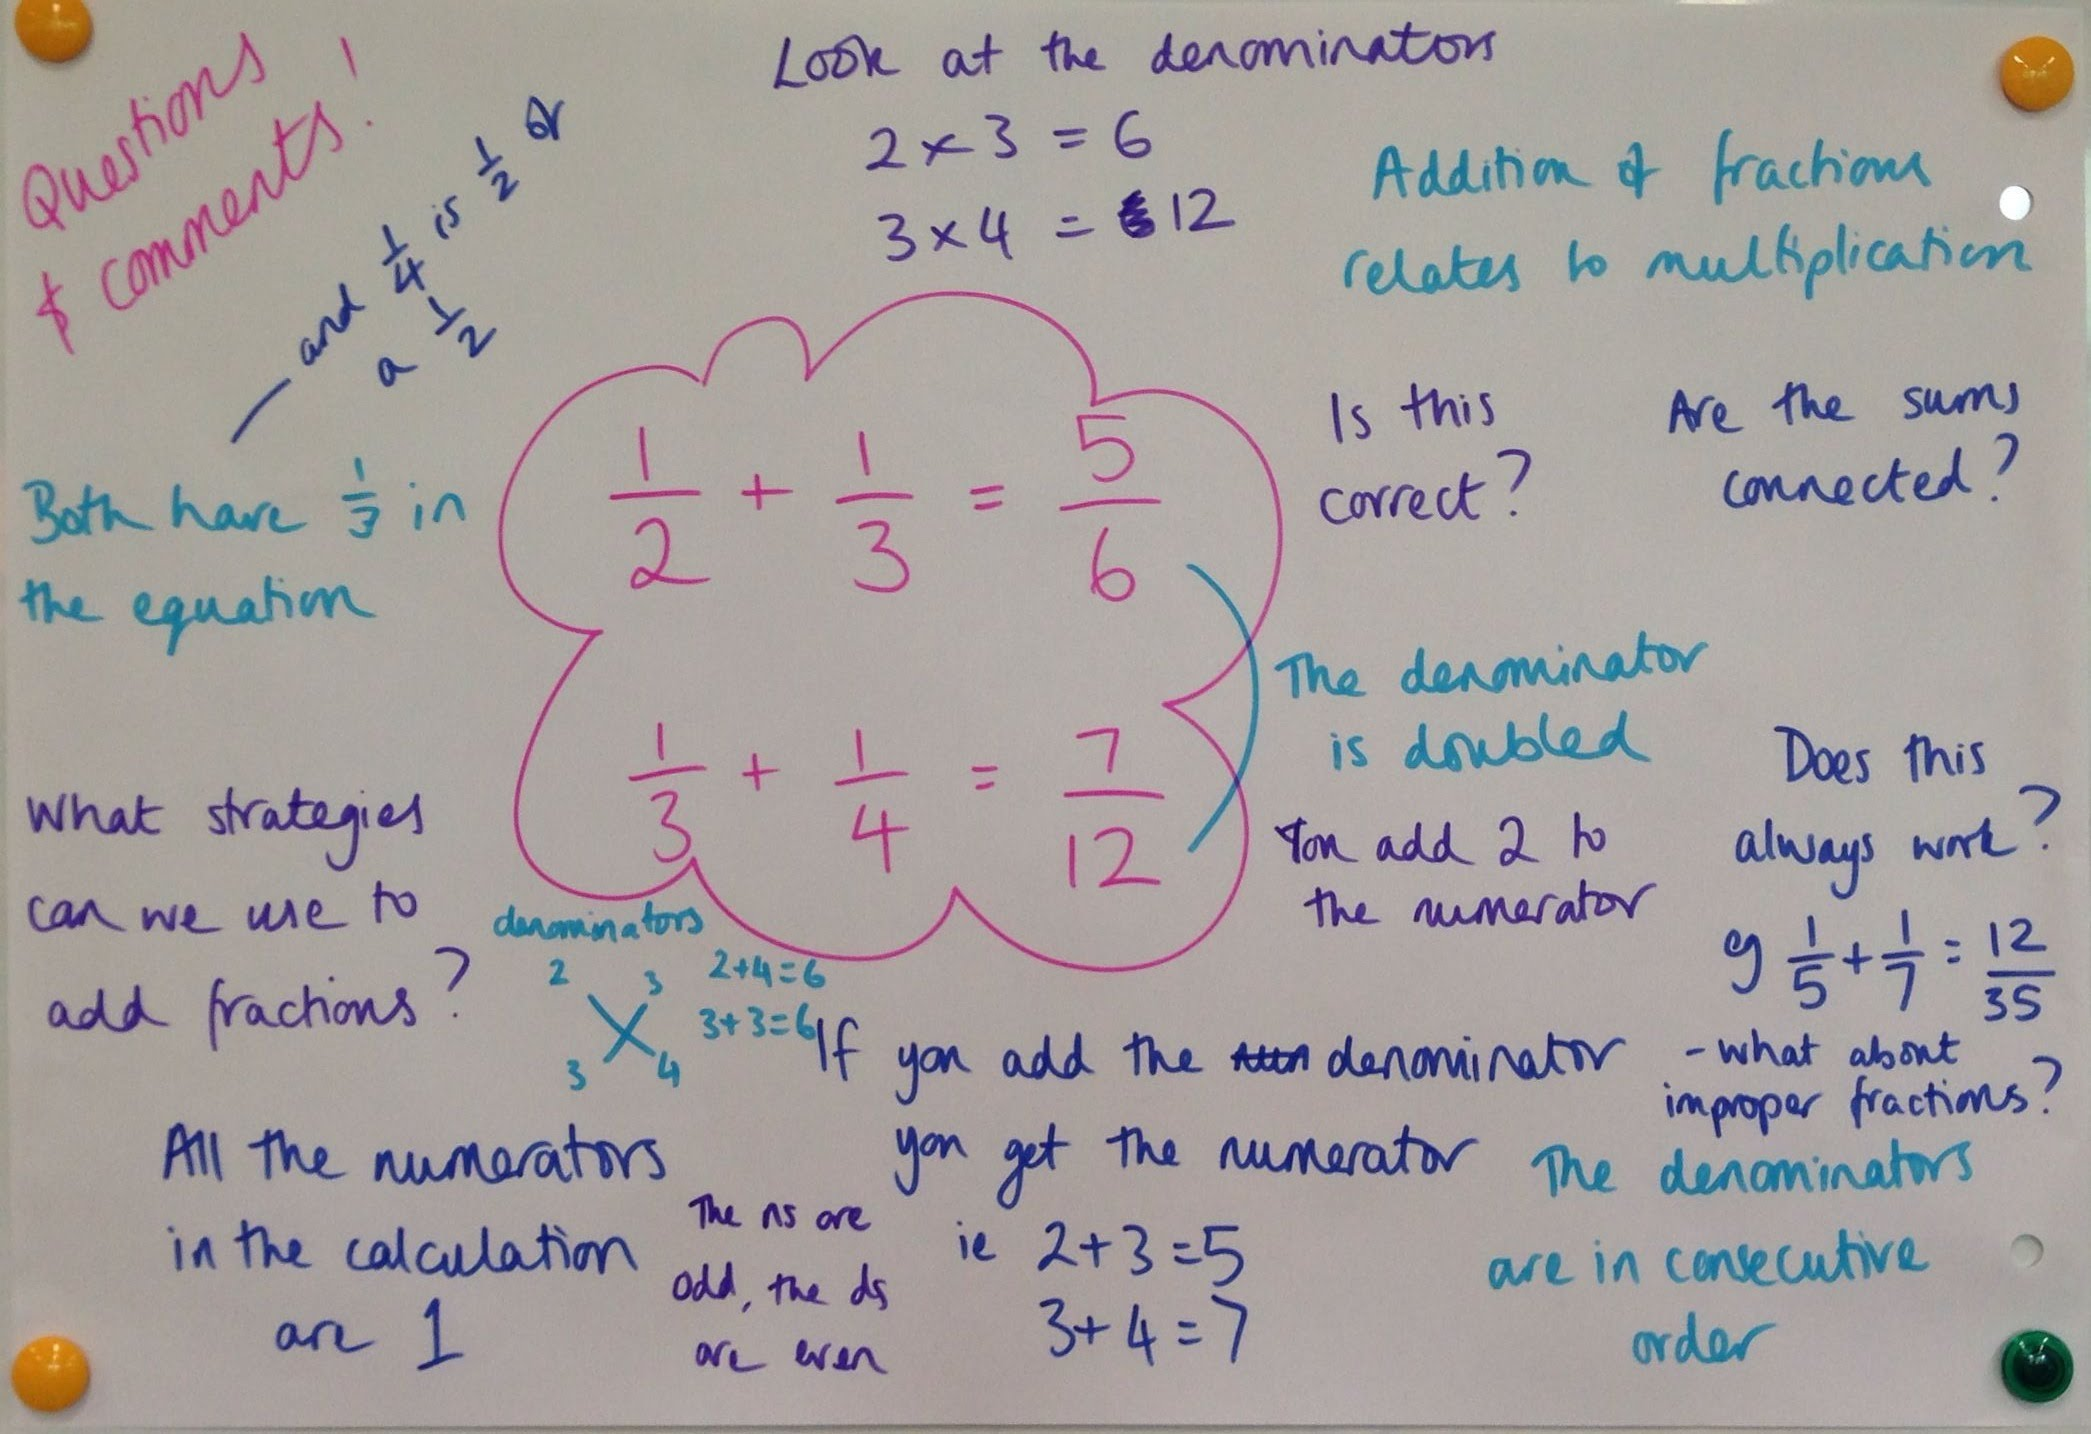 These Are The Initial Thoughts And Questions Of Amanda Klahn's Grade 4  (year 5) Adding Algebraic Fractions